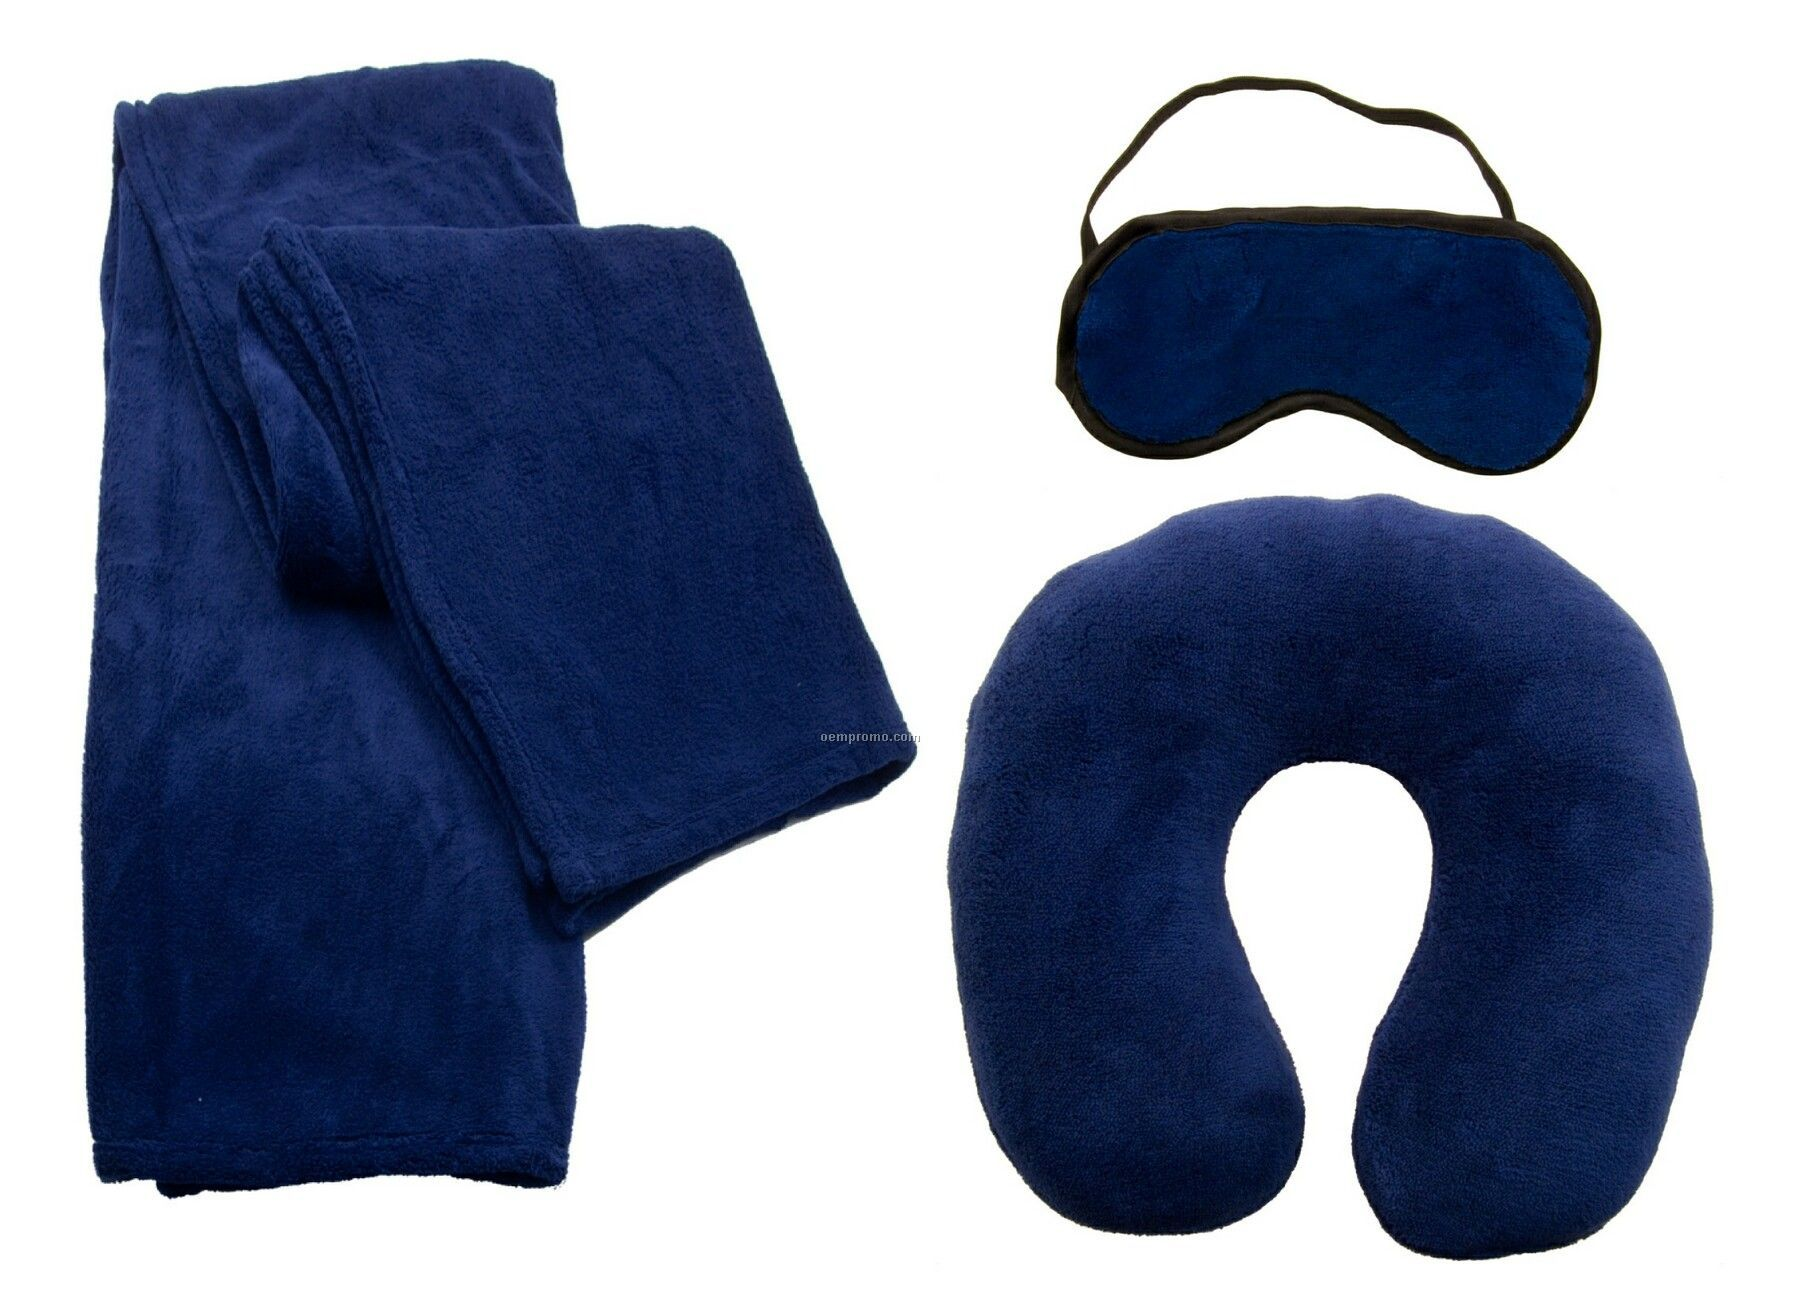 Travel Set W Blanket Pillow Mask Overseas 6 7 Week